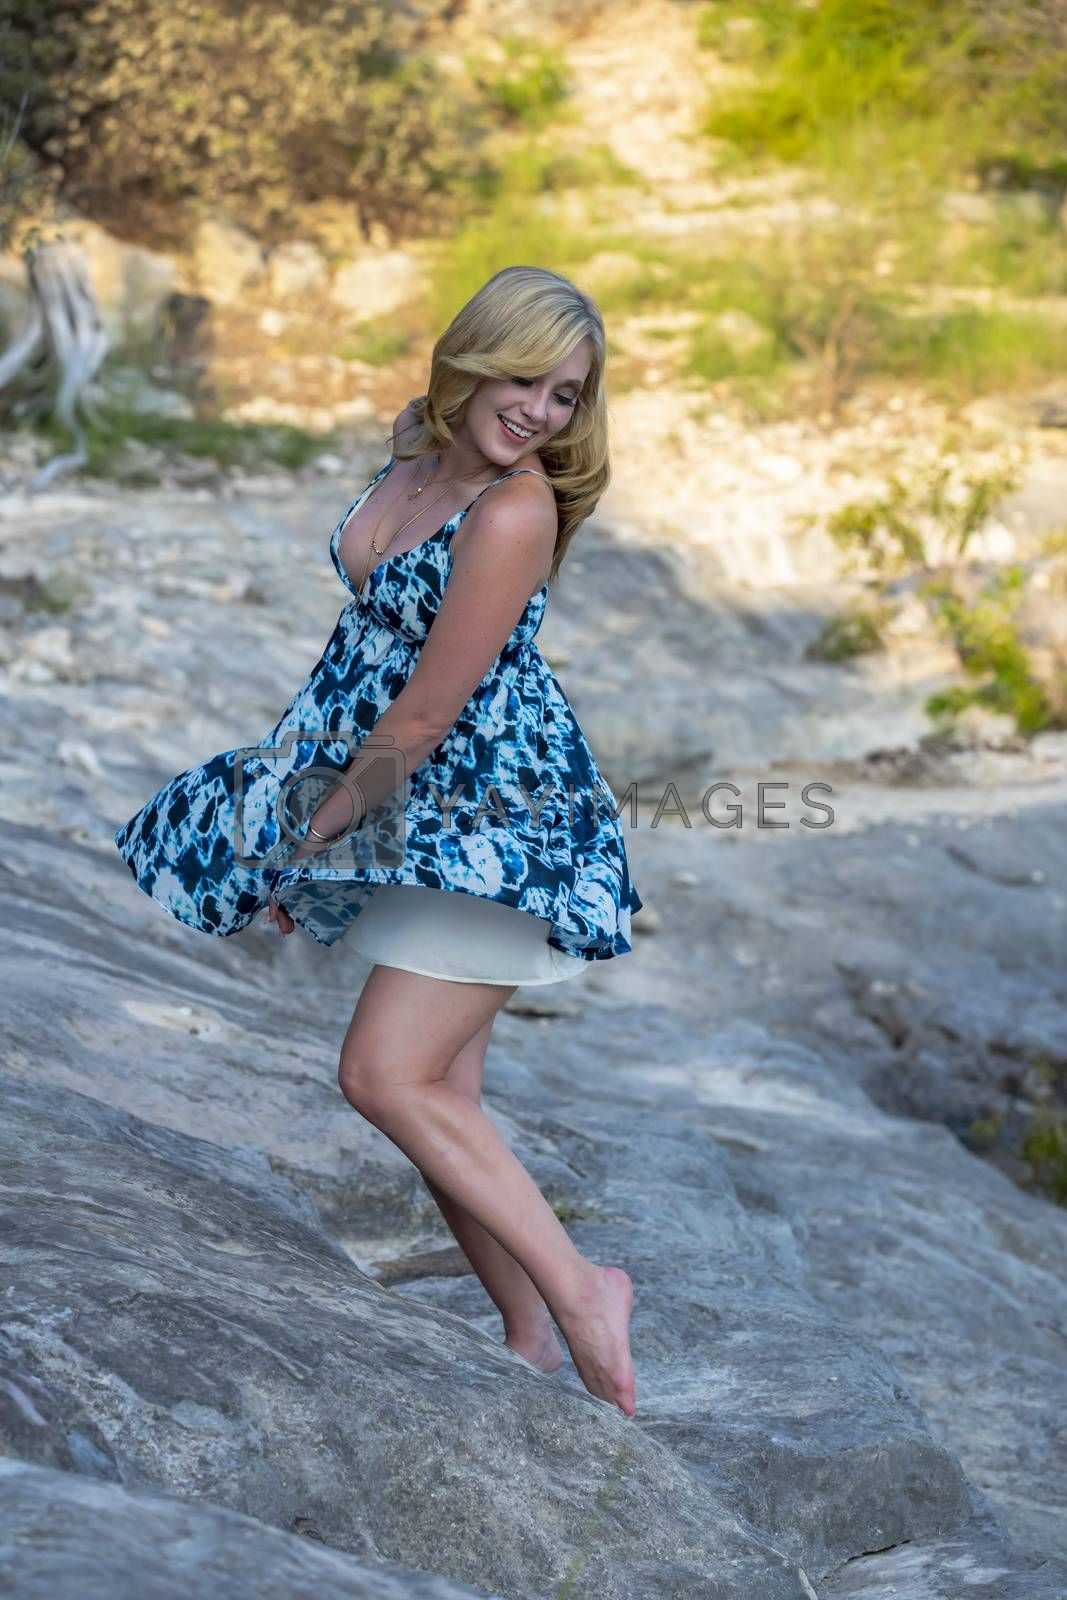 A Lovely Blonde Model Enjoys A Summers Day Outdoors At The Park by actionsports